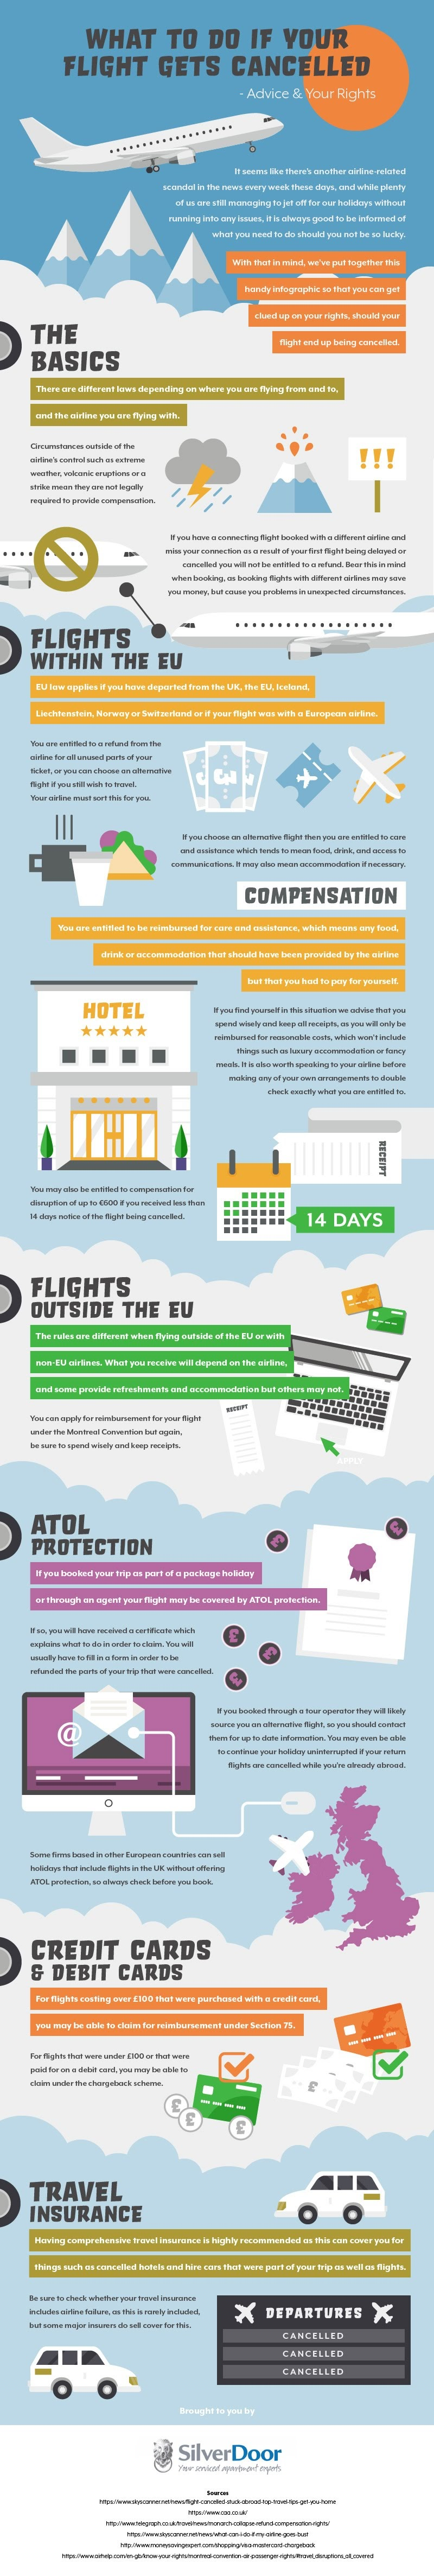 What To Do If Your Flight Gets Cancelled #Infographic